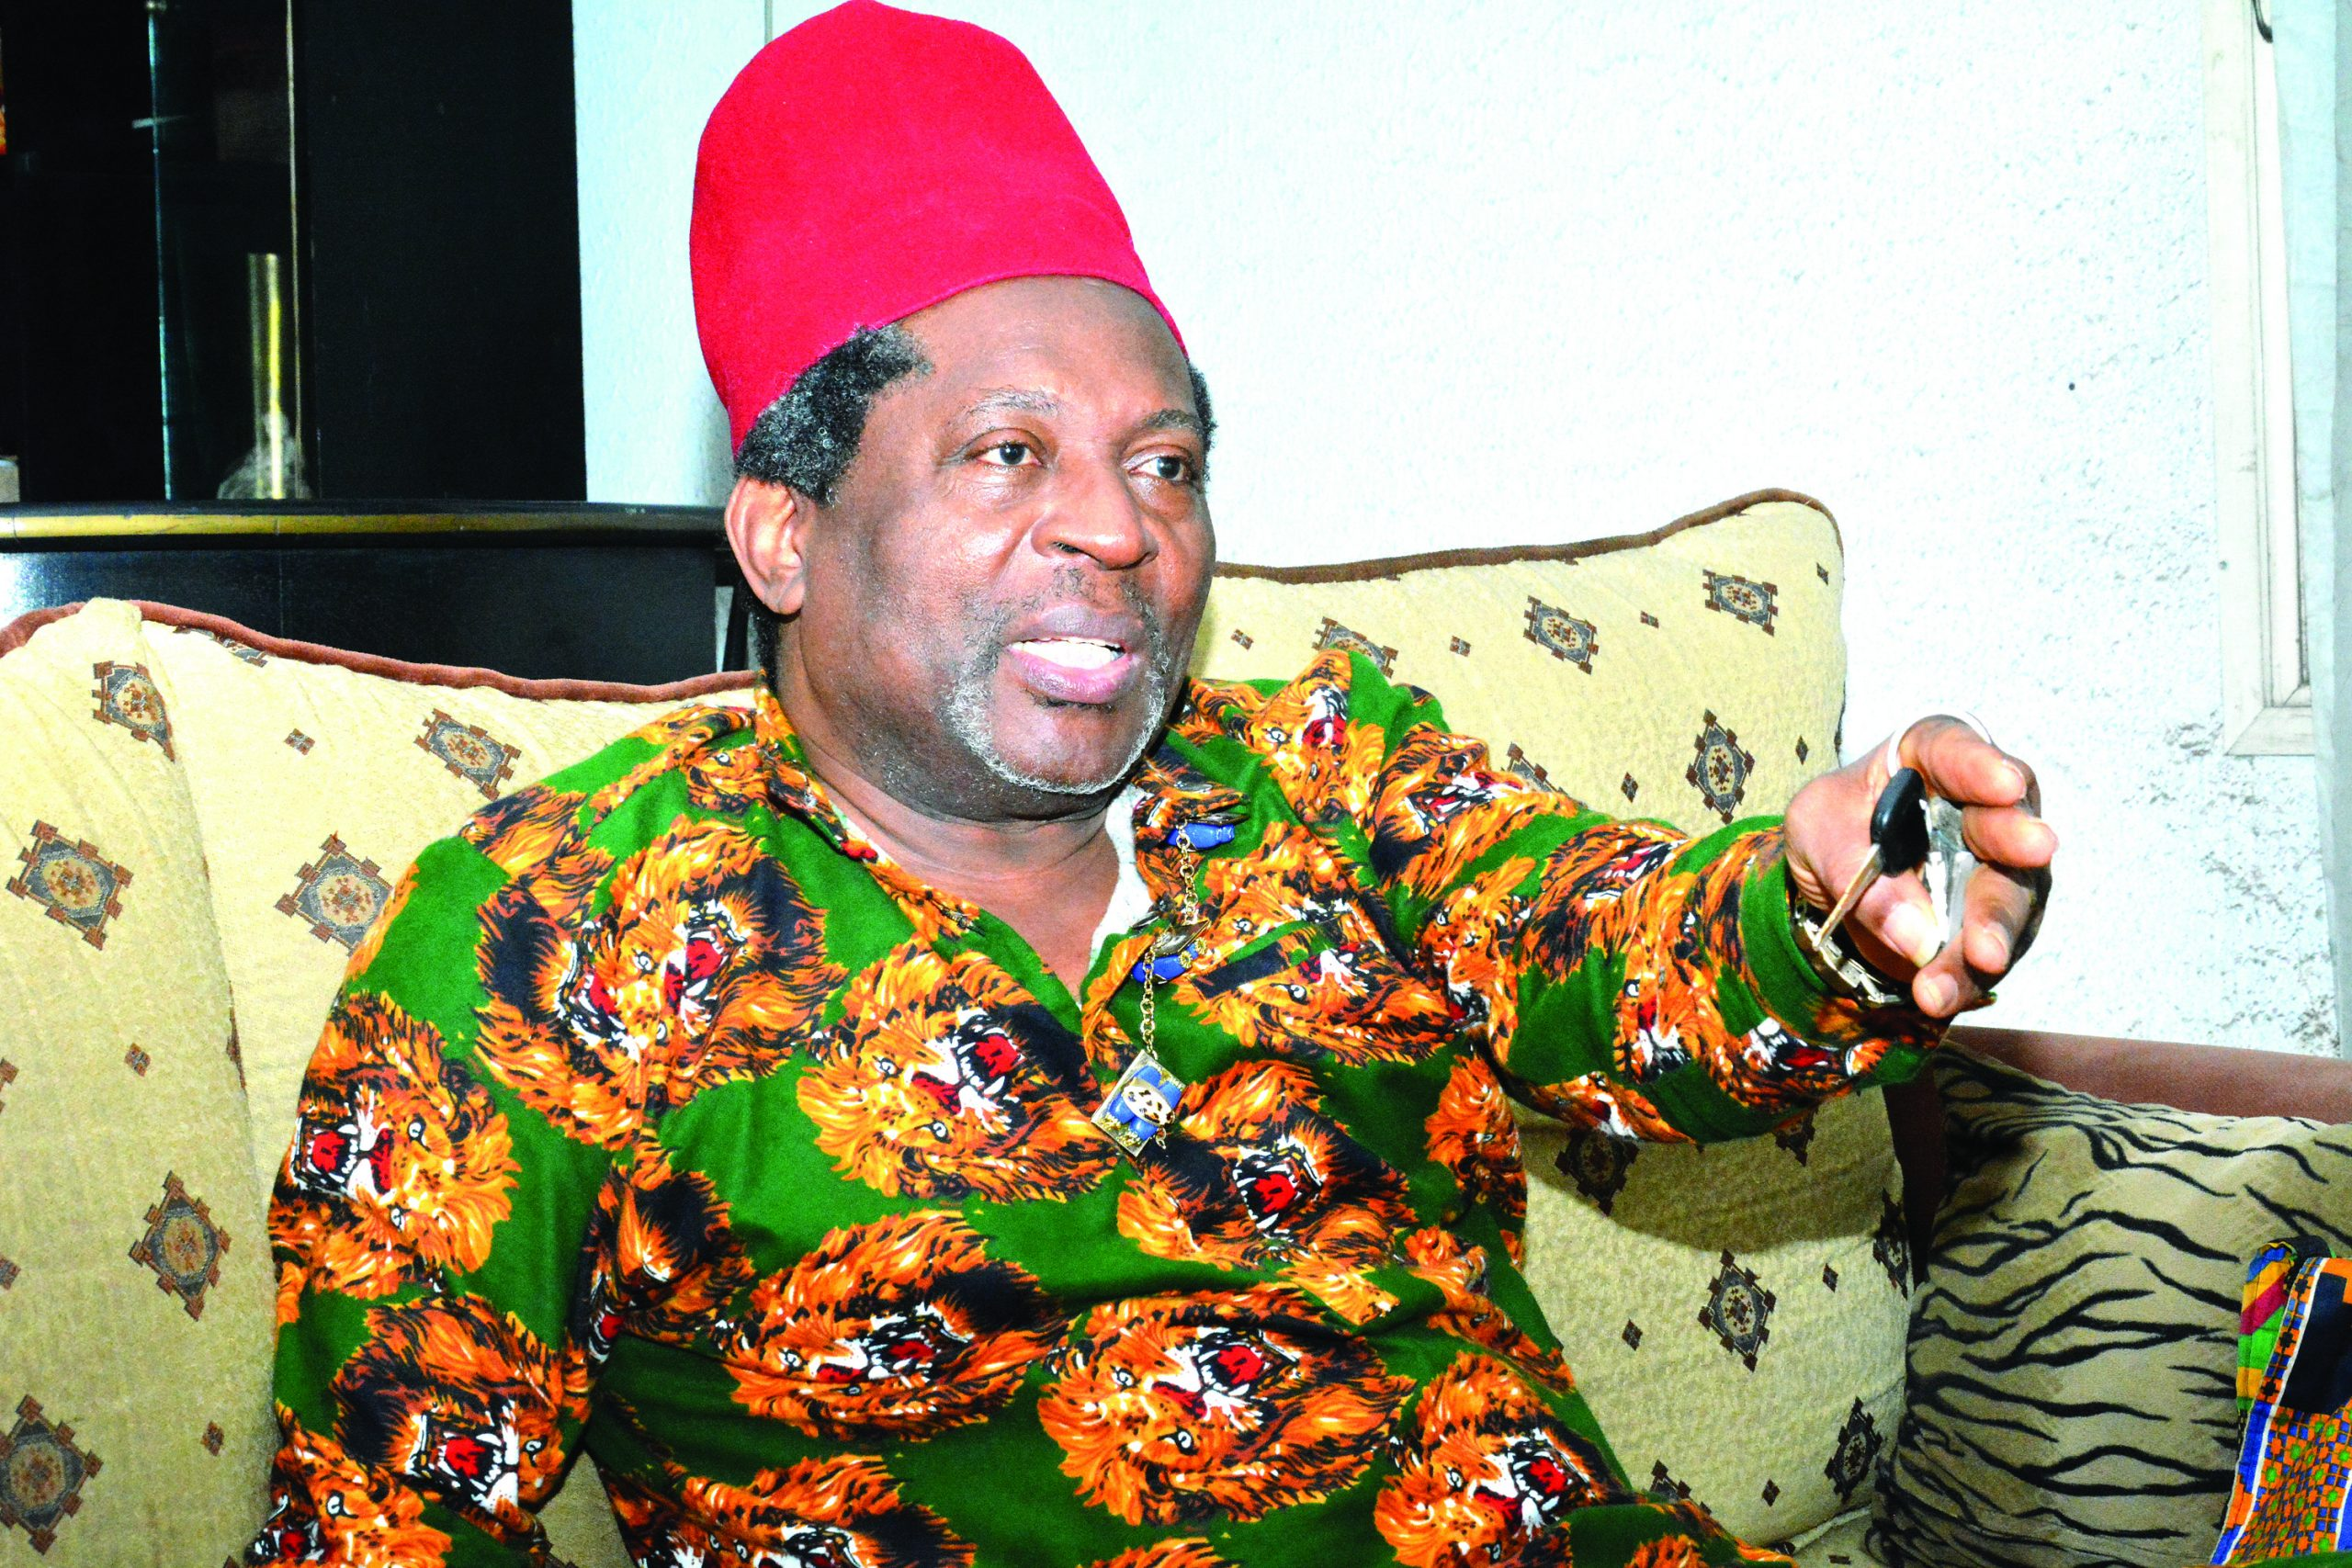 Investment in agriculture's key to developing Southeast region --- Ijezie, chairman, Akuluouno